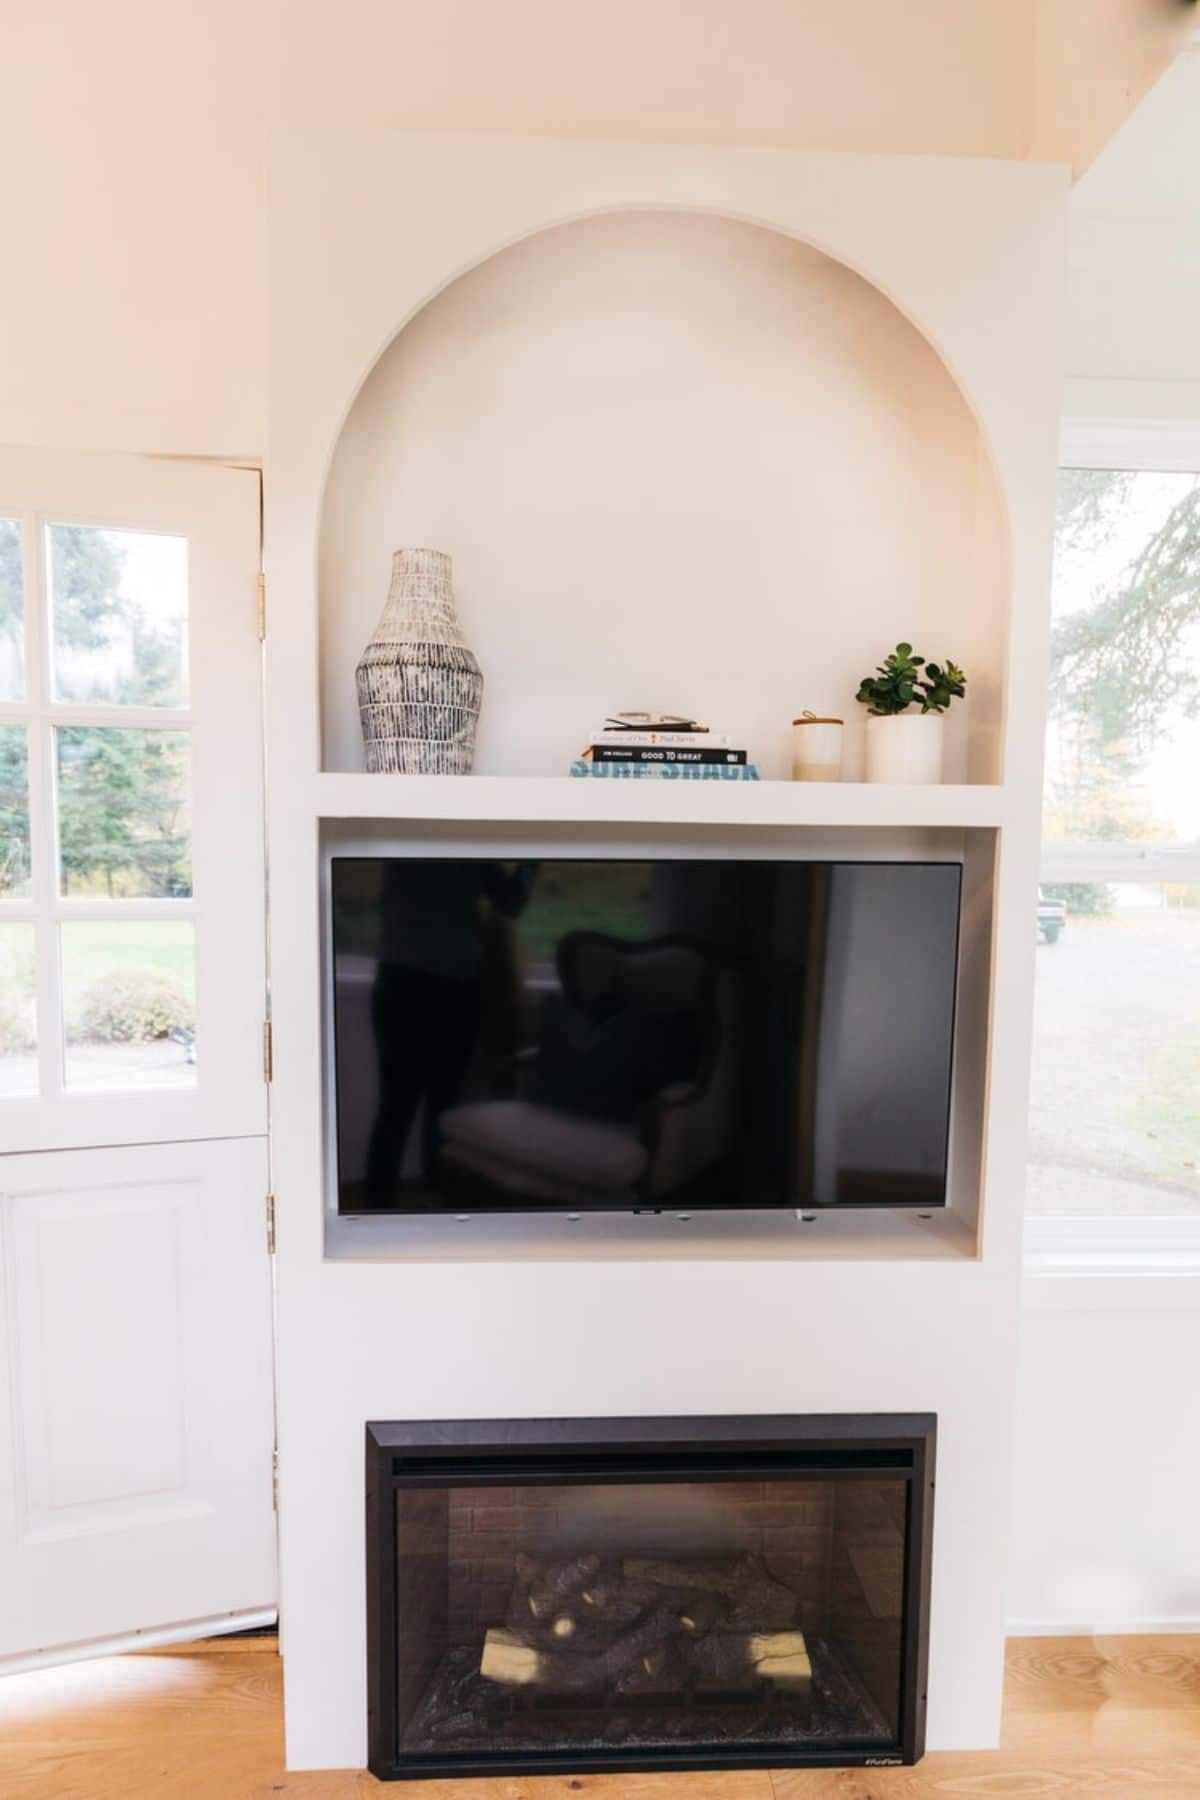 TV in wall cubby with fireplace below